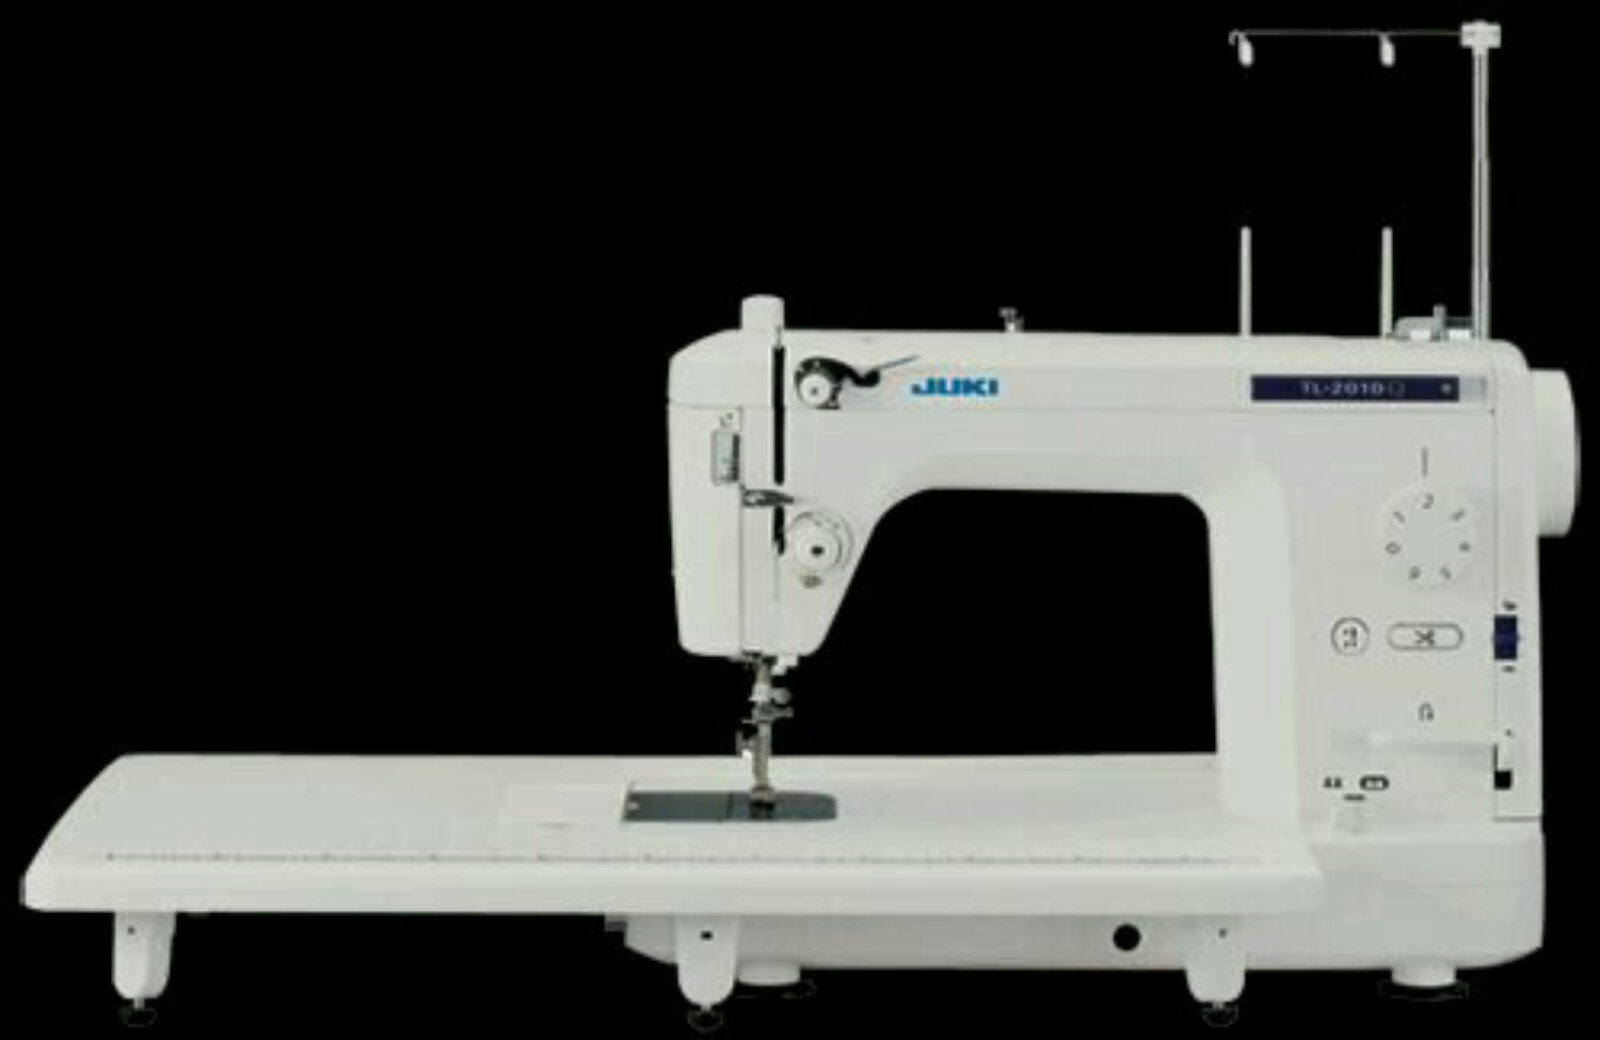 juki portable heavy duty sewing machine@@@